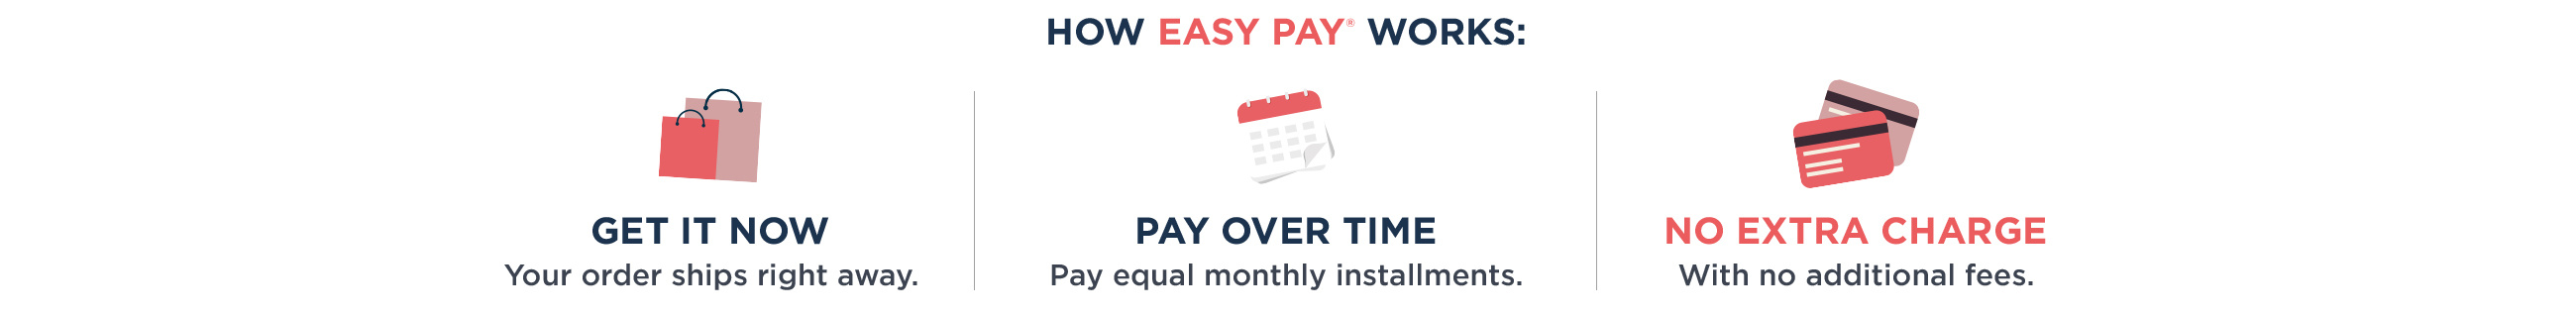 HOW EASY PAY® WORKS — GET IT NOW: Your order ships right away. — PAY OVER TIME: Pay equal monthly installments. — NO EXTRA CHARGE: With no additional fees.